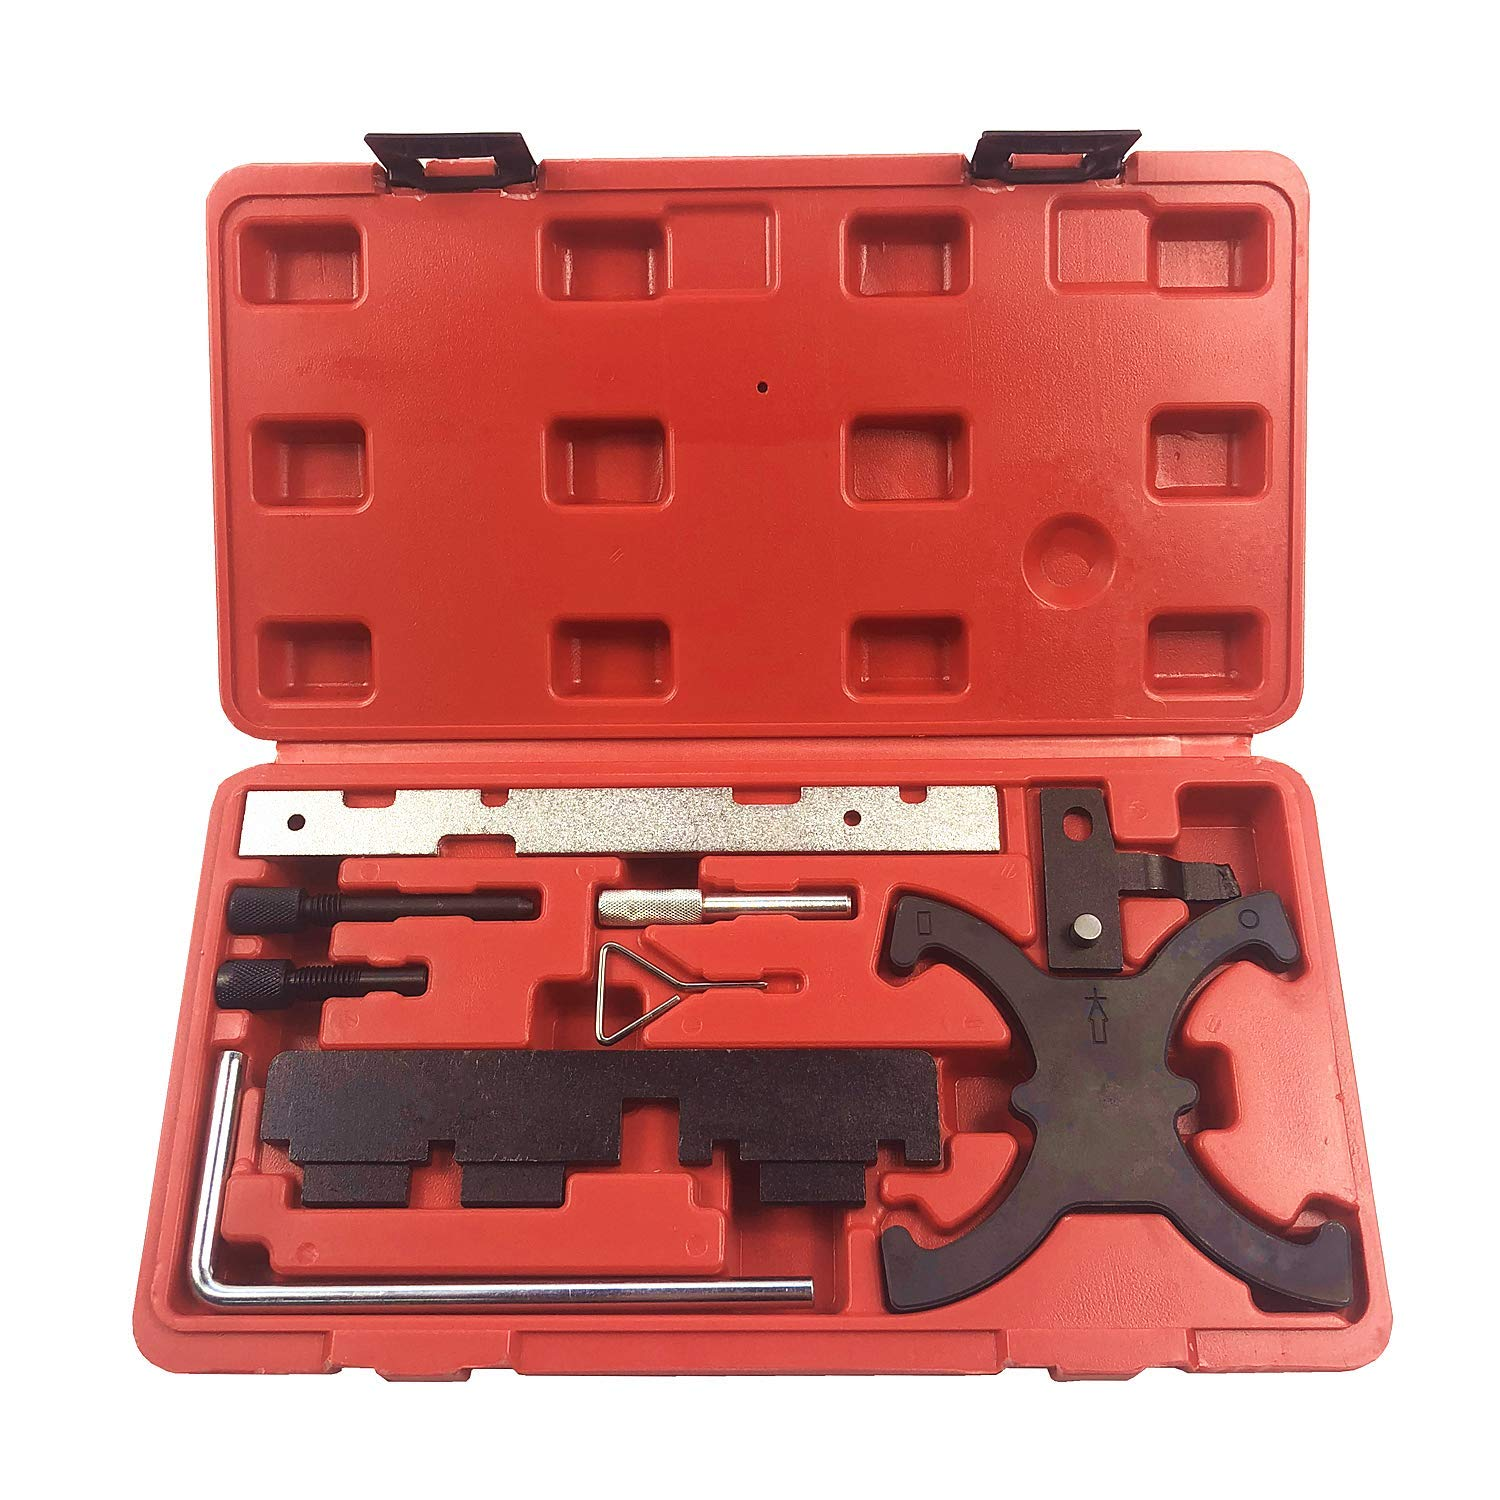 Best Q Engine Camshaft Timing Locking Tool Set Kit for Ford Focus 1.6 Mazada 1.6 Eco Boost Volvo ShiQi